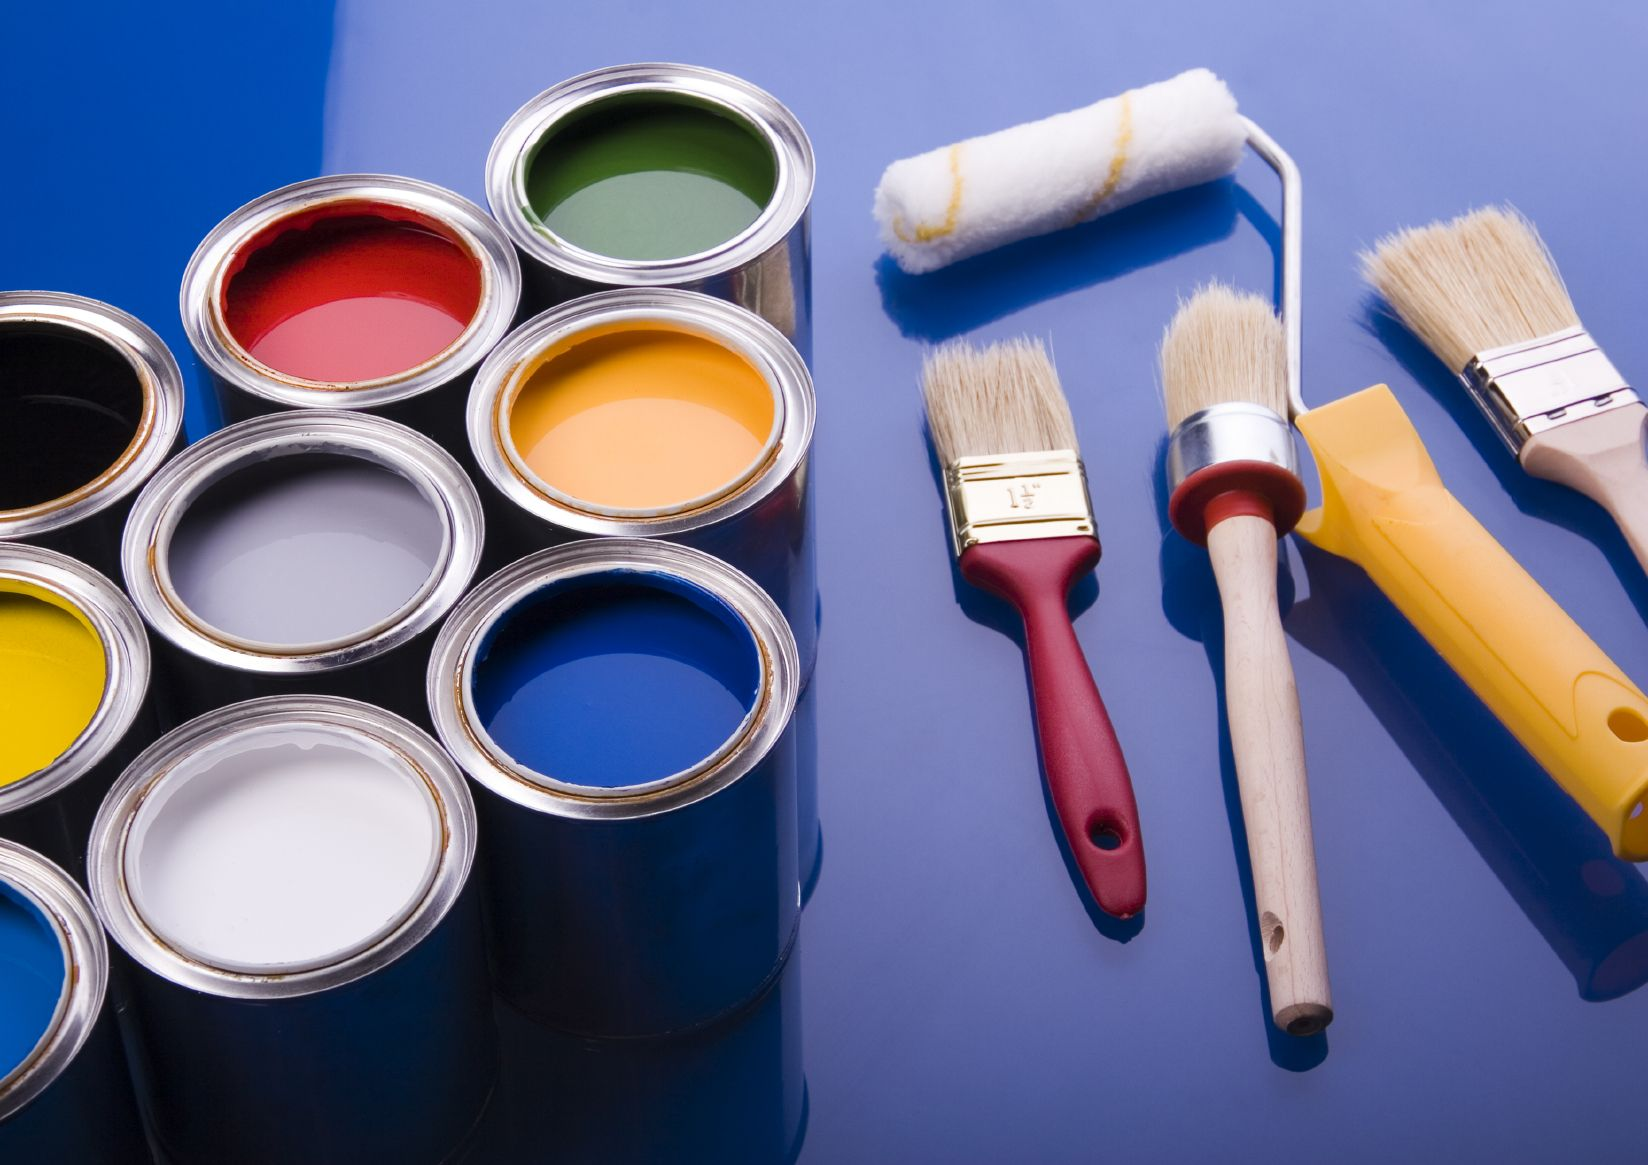 choosing paint colors. Tired Of Choosing Paint Colors The Hard Way And Paying For Color Mistakes? Want A